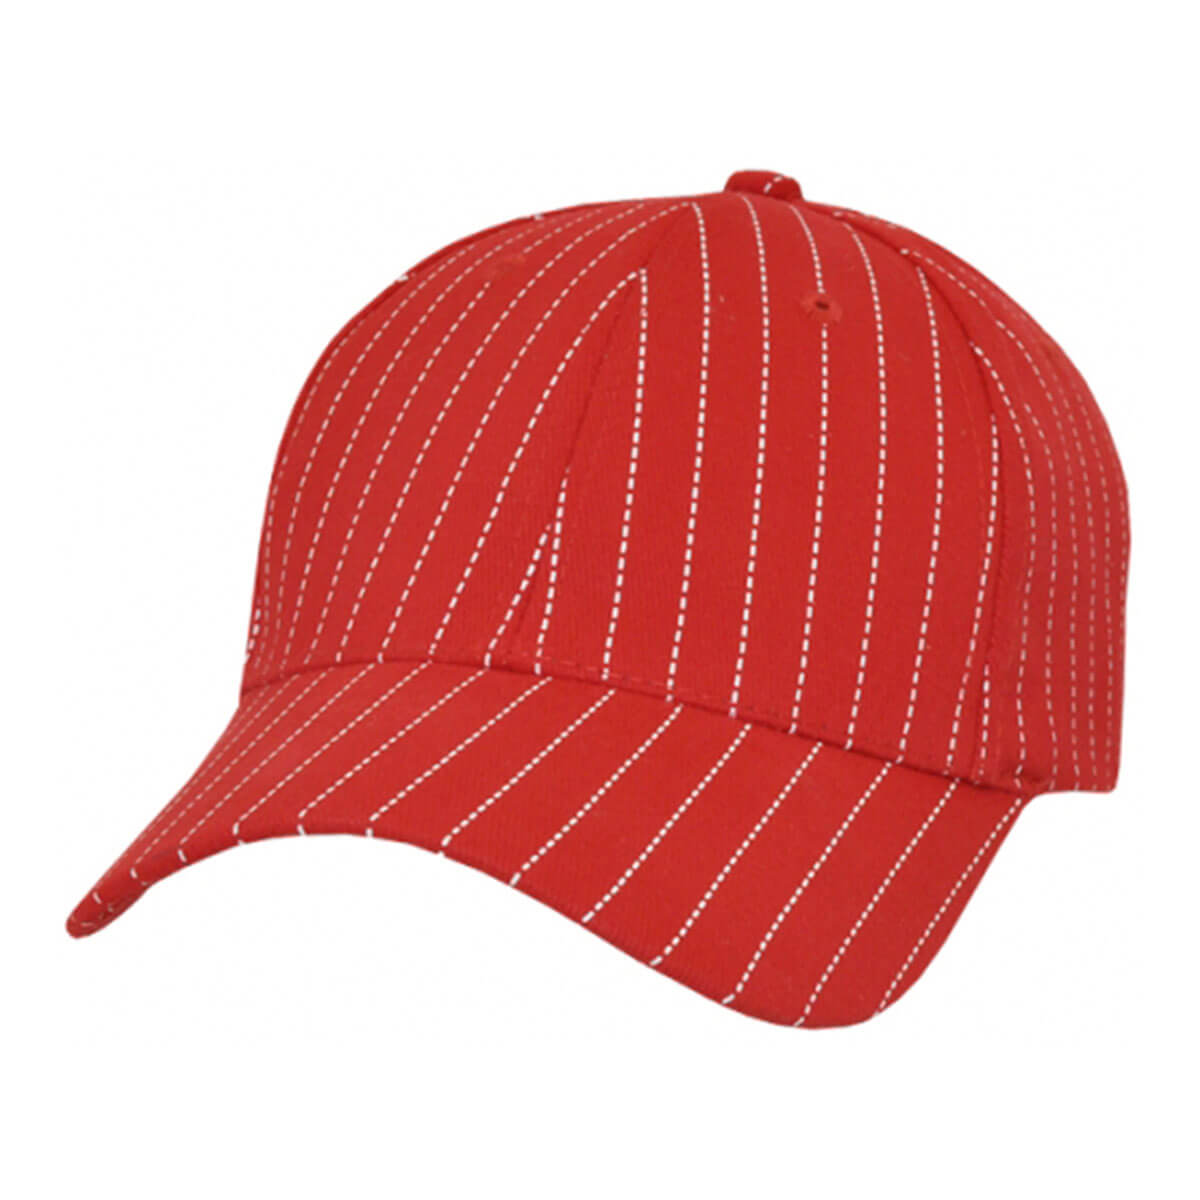 Executive Cap-Red / White